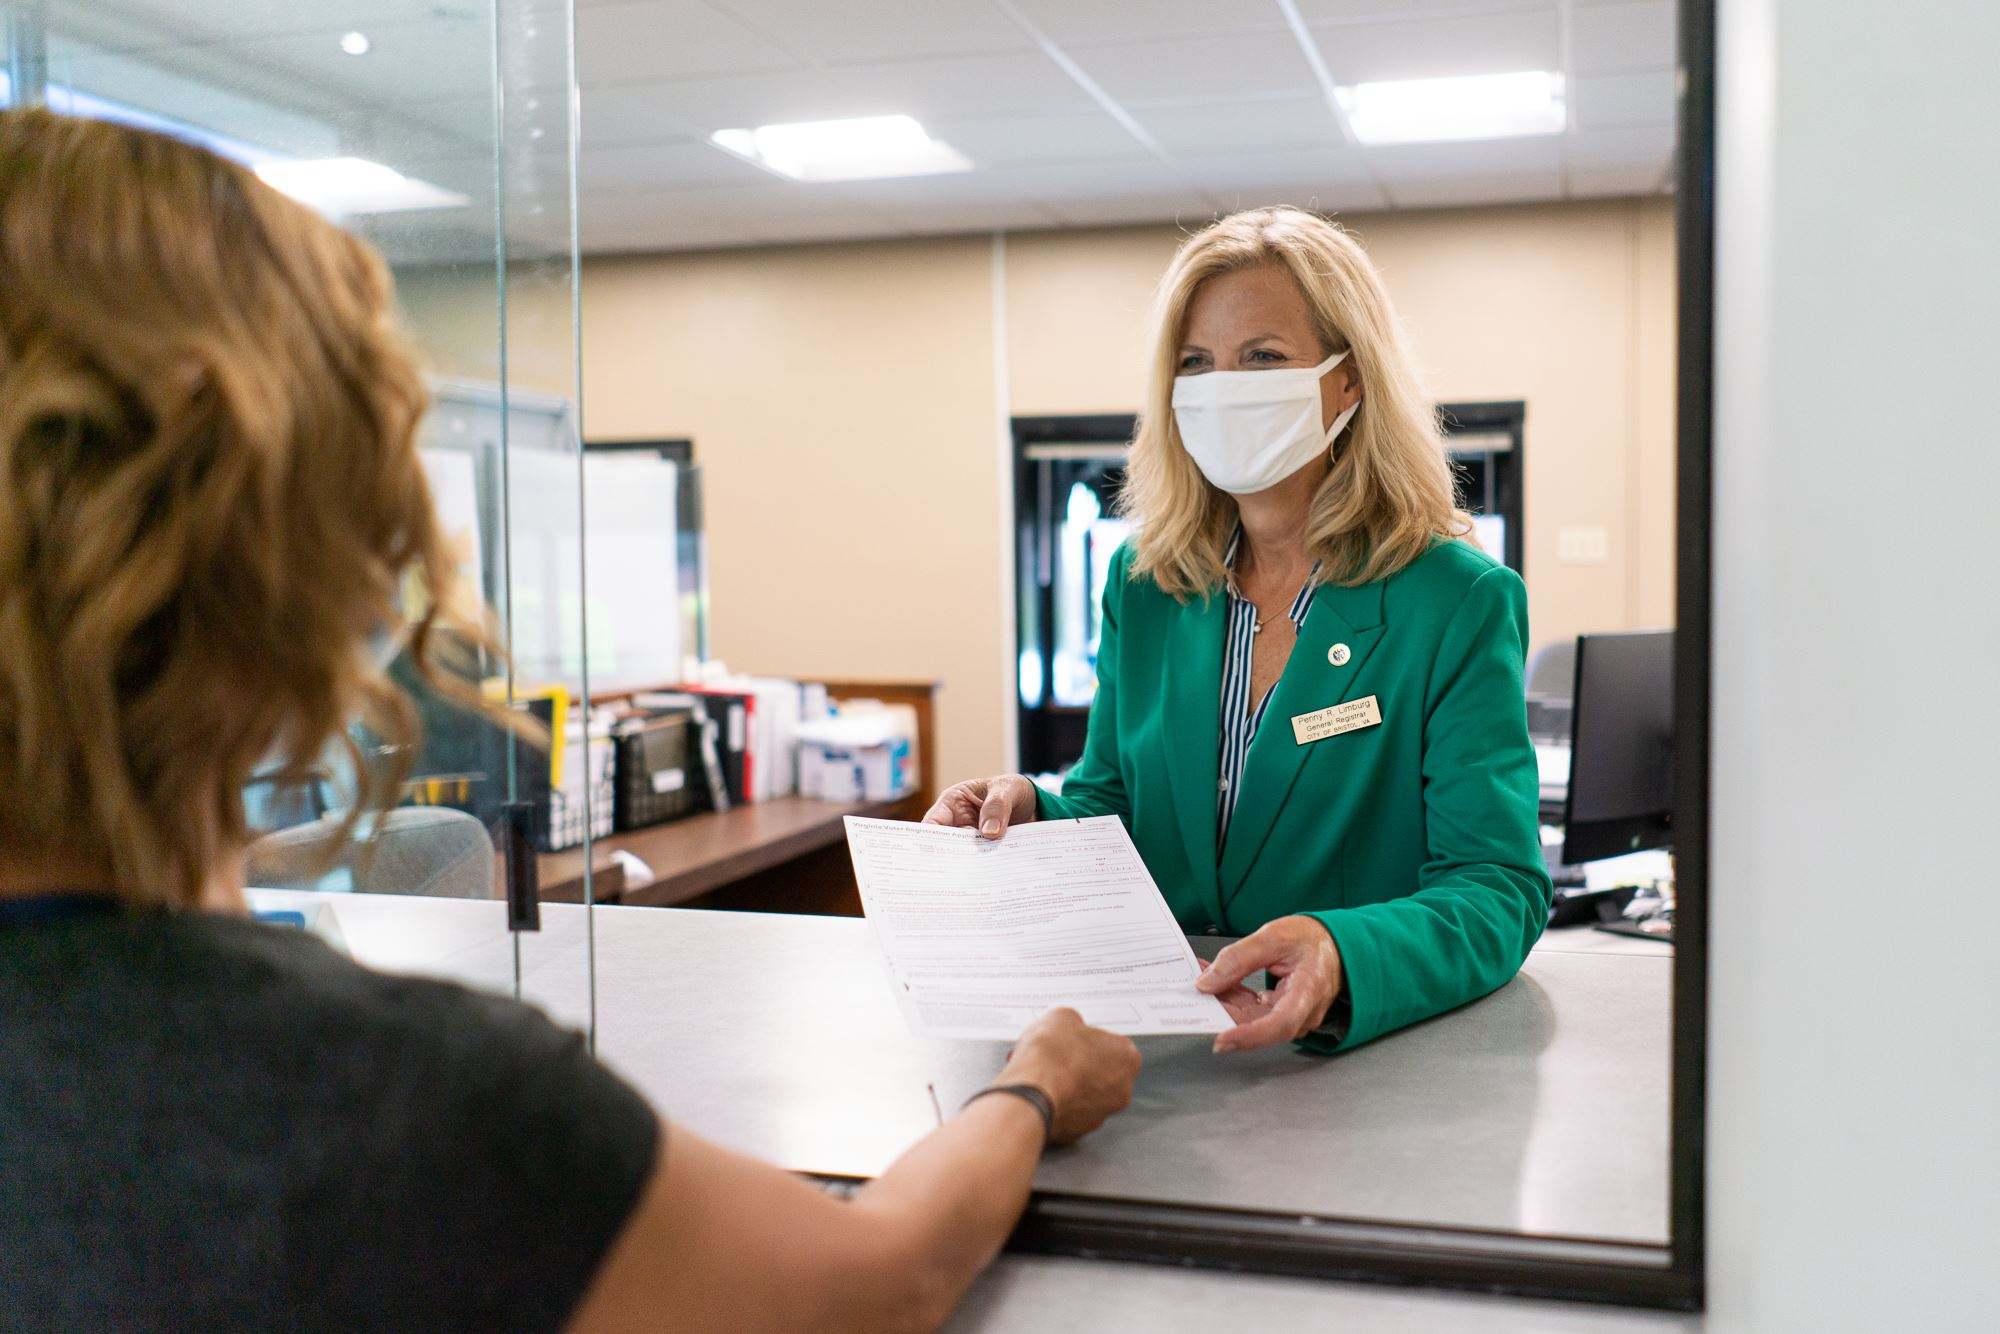 Employee handing voter registration form to citizen wearing masks